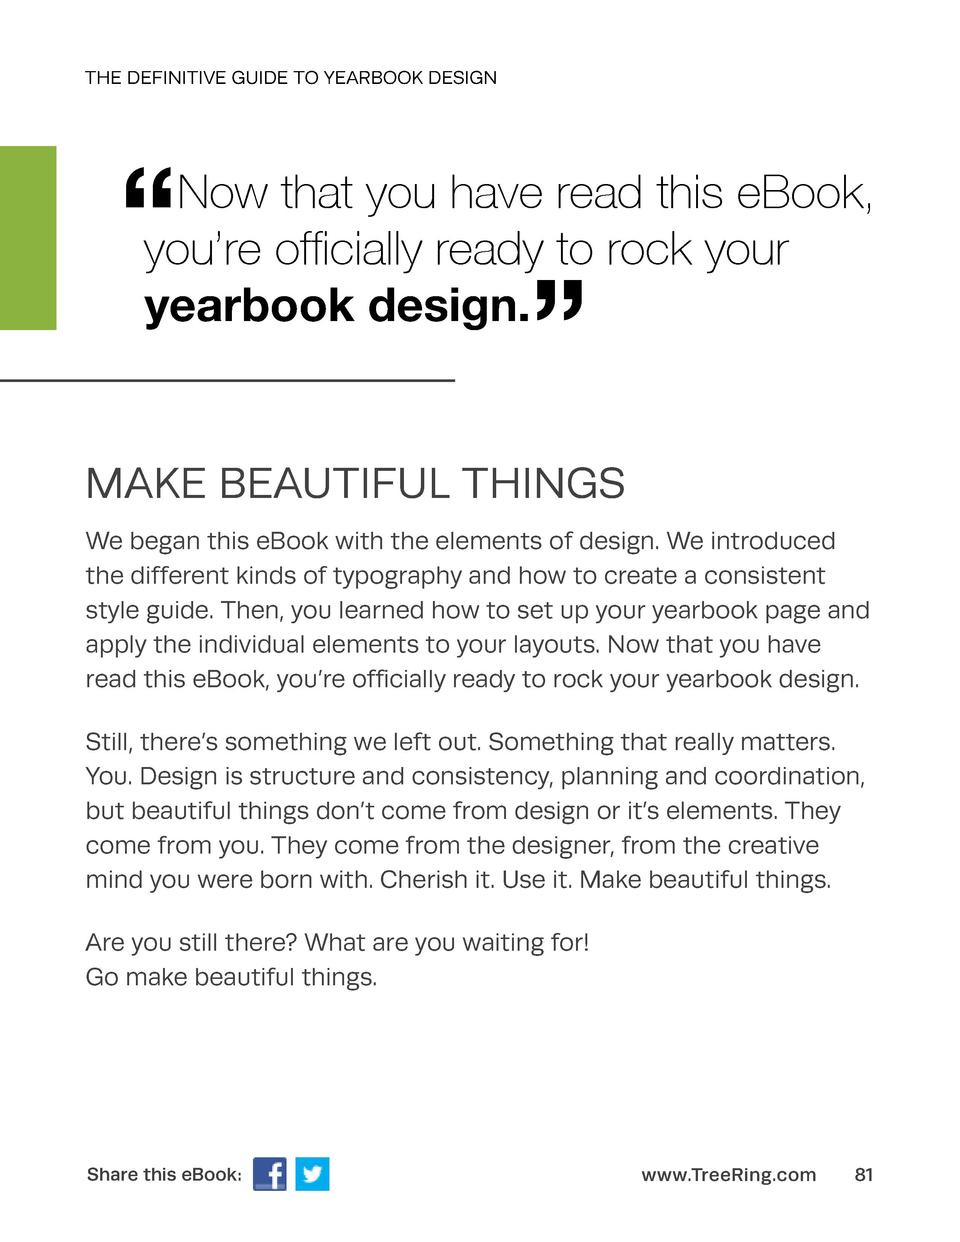 THE DEFINITIVE GUIDE TO YEARBOOK DESIGN       Now that you have read this eBook, you   re officially ready to rock your ye...